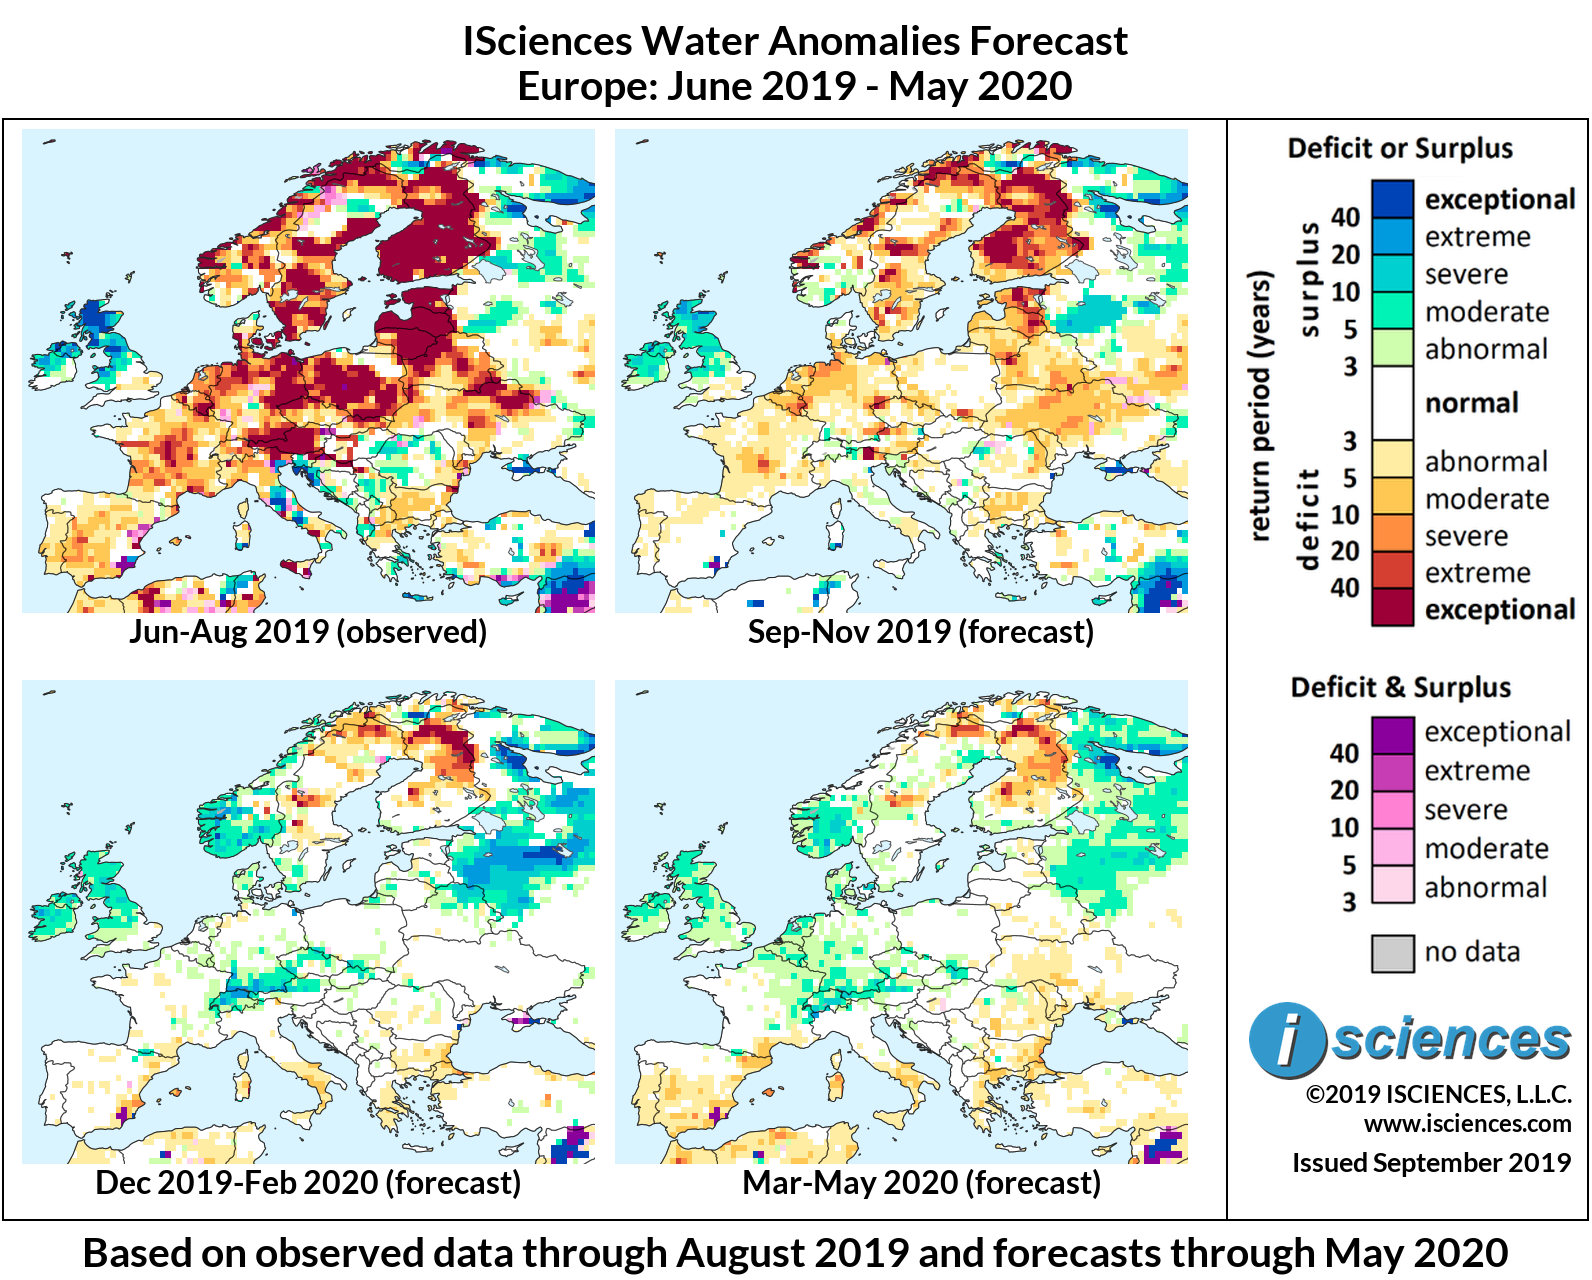 ISciences_Europe_Composite_Adjusted_201906-202005_3mo_panel.png